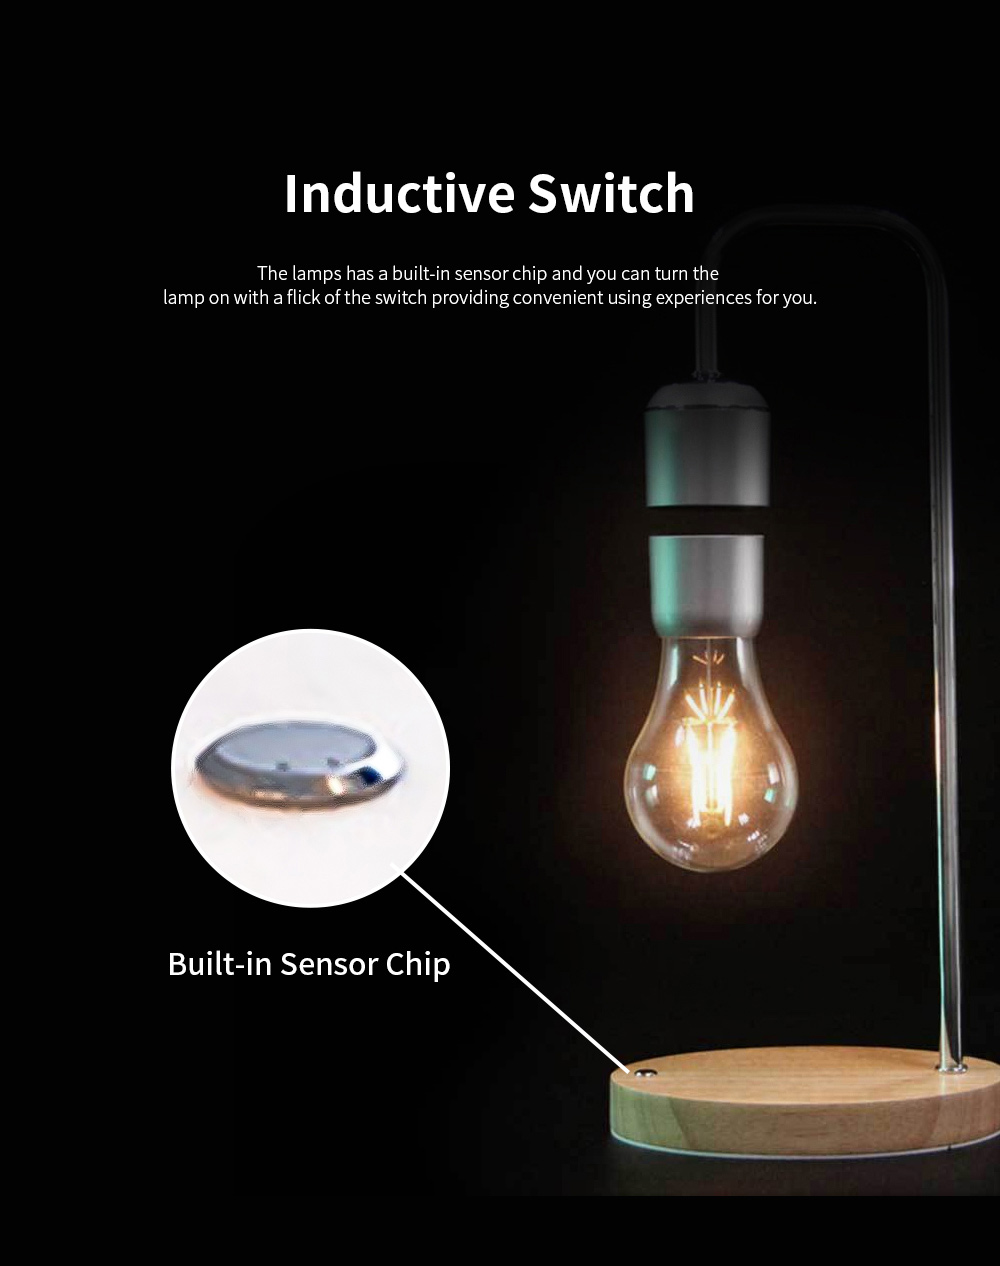 Creative Stylish Energy-conservation Mute Magnetic Suspension Light Table Lamp with Inductive Switch Anti-skid Base 3